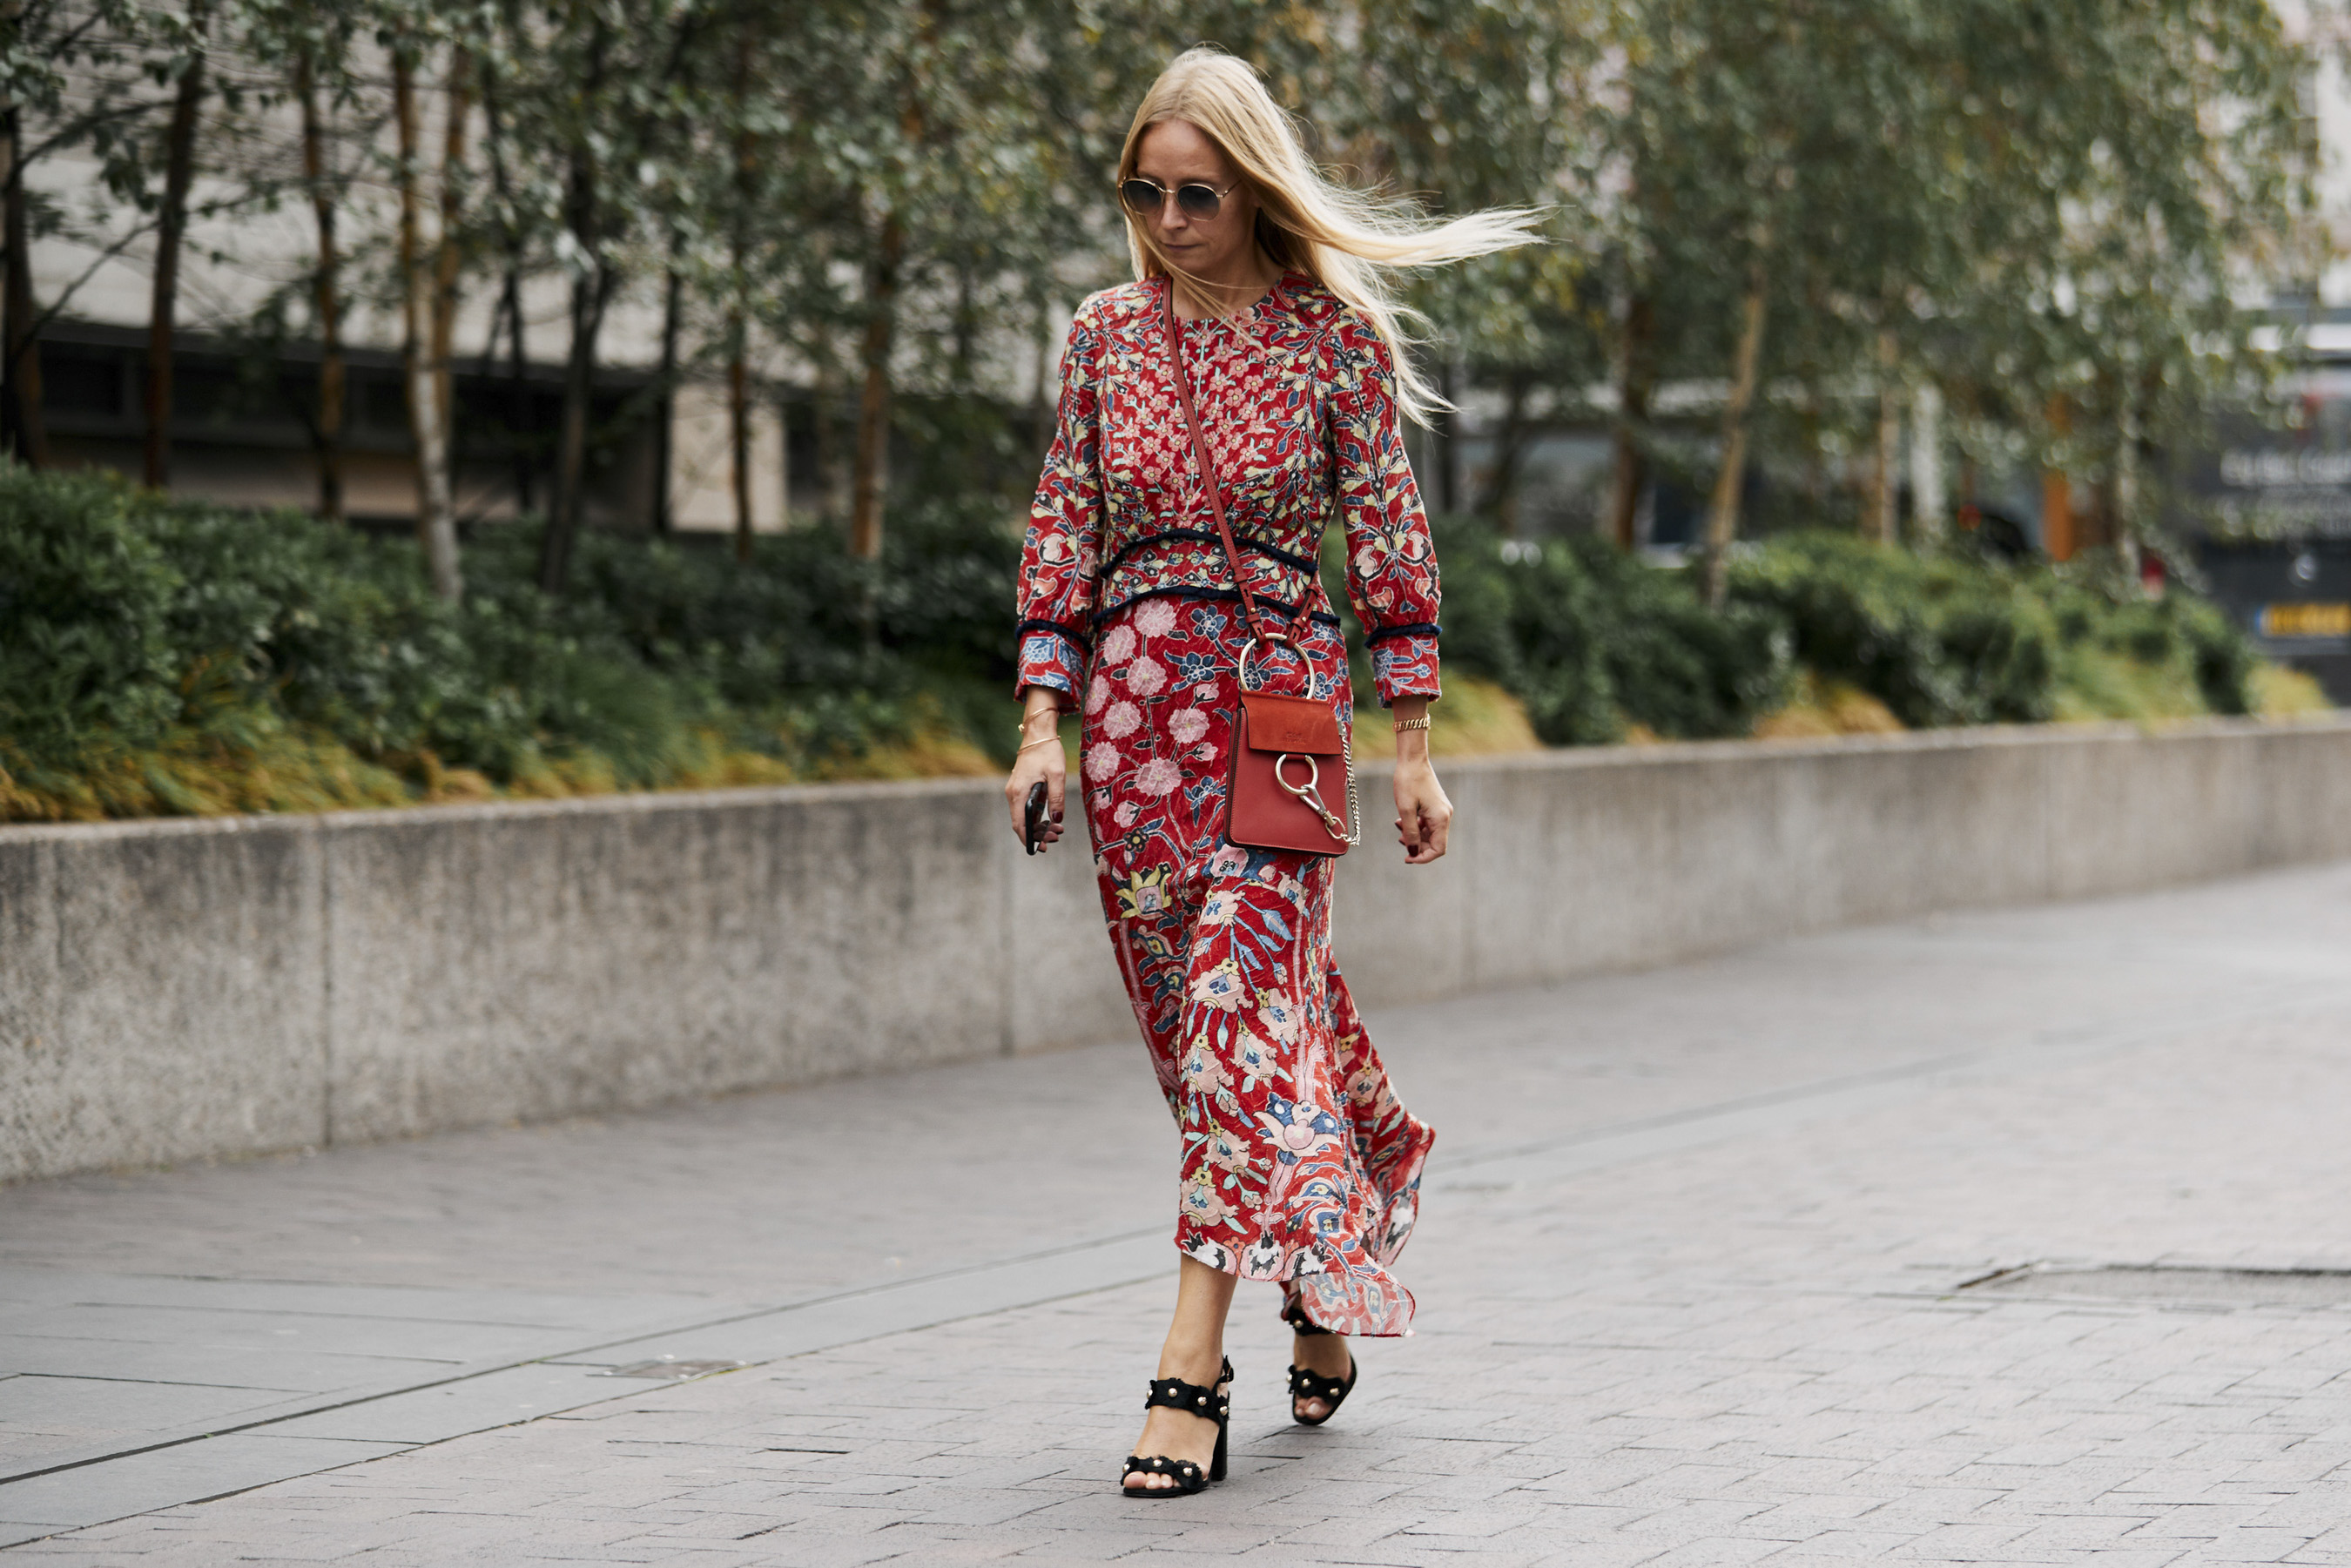 The Top 50 London Street Style Looks from Spring 2019